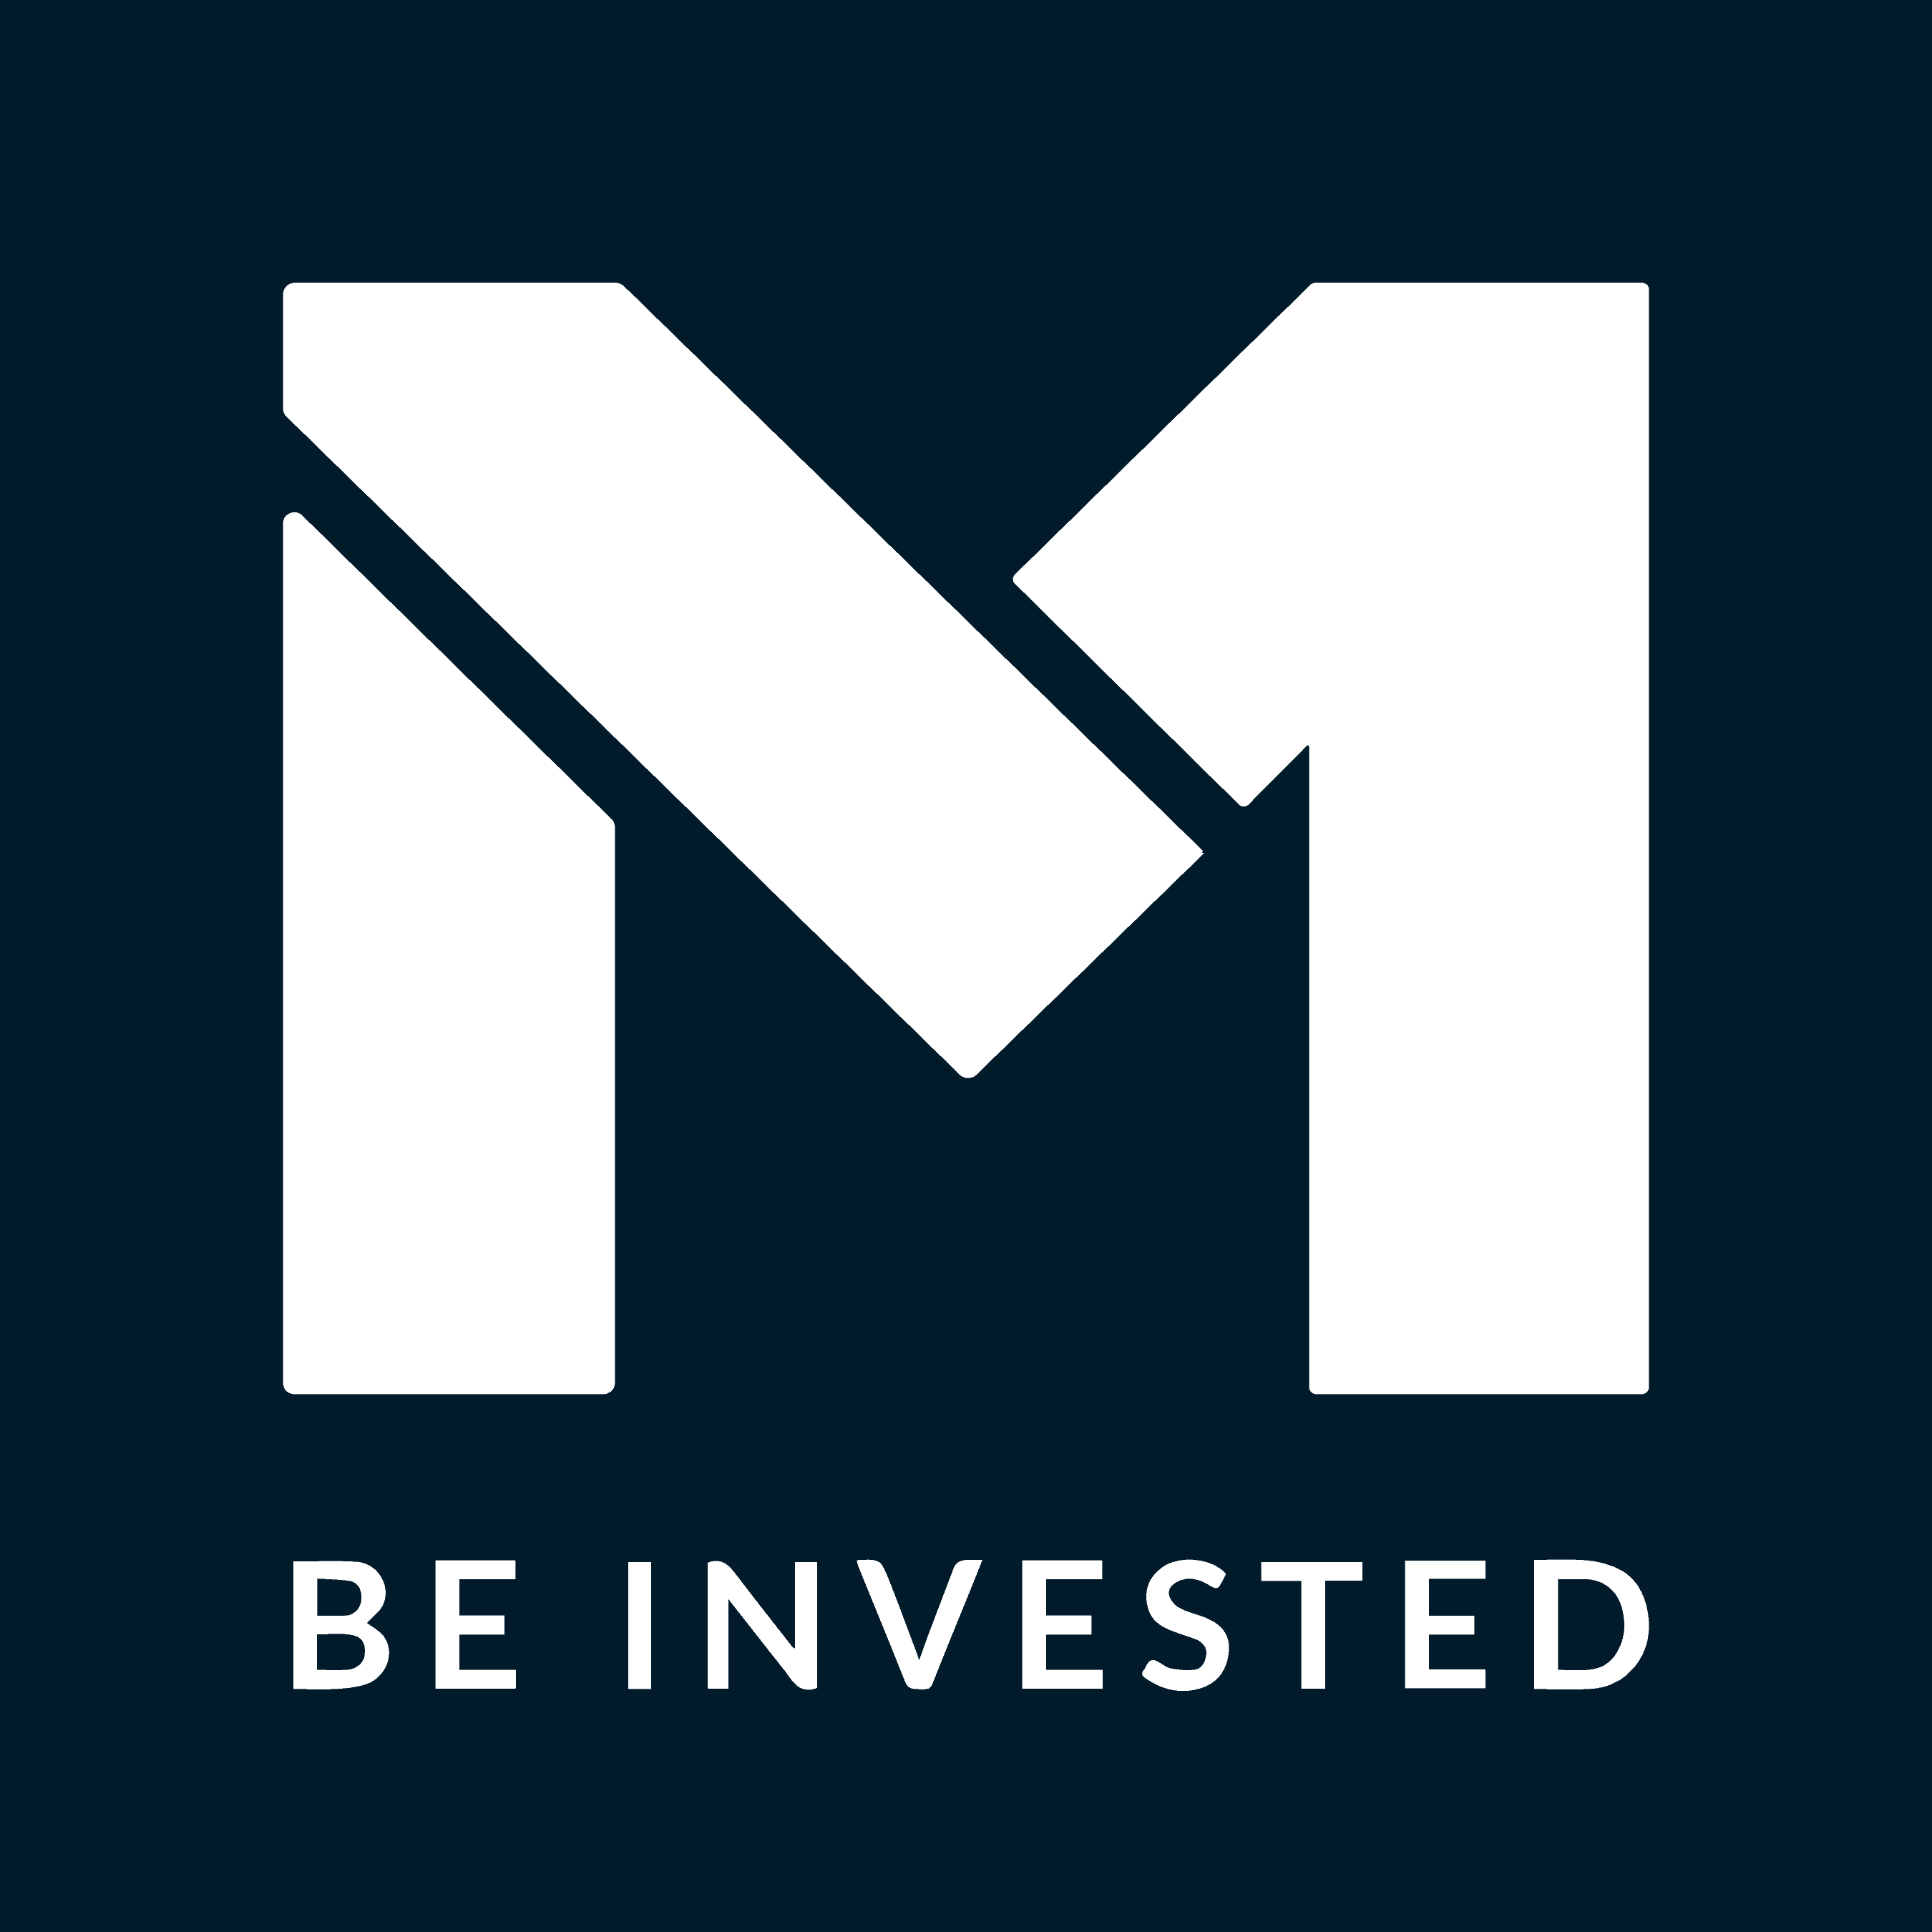 M1 Finance Review: The Perfect Roboadvisor App?